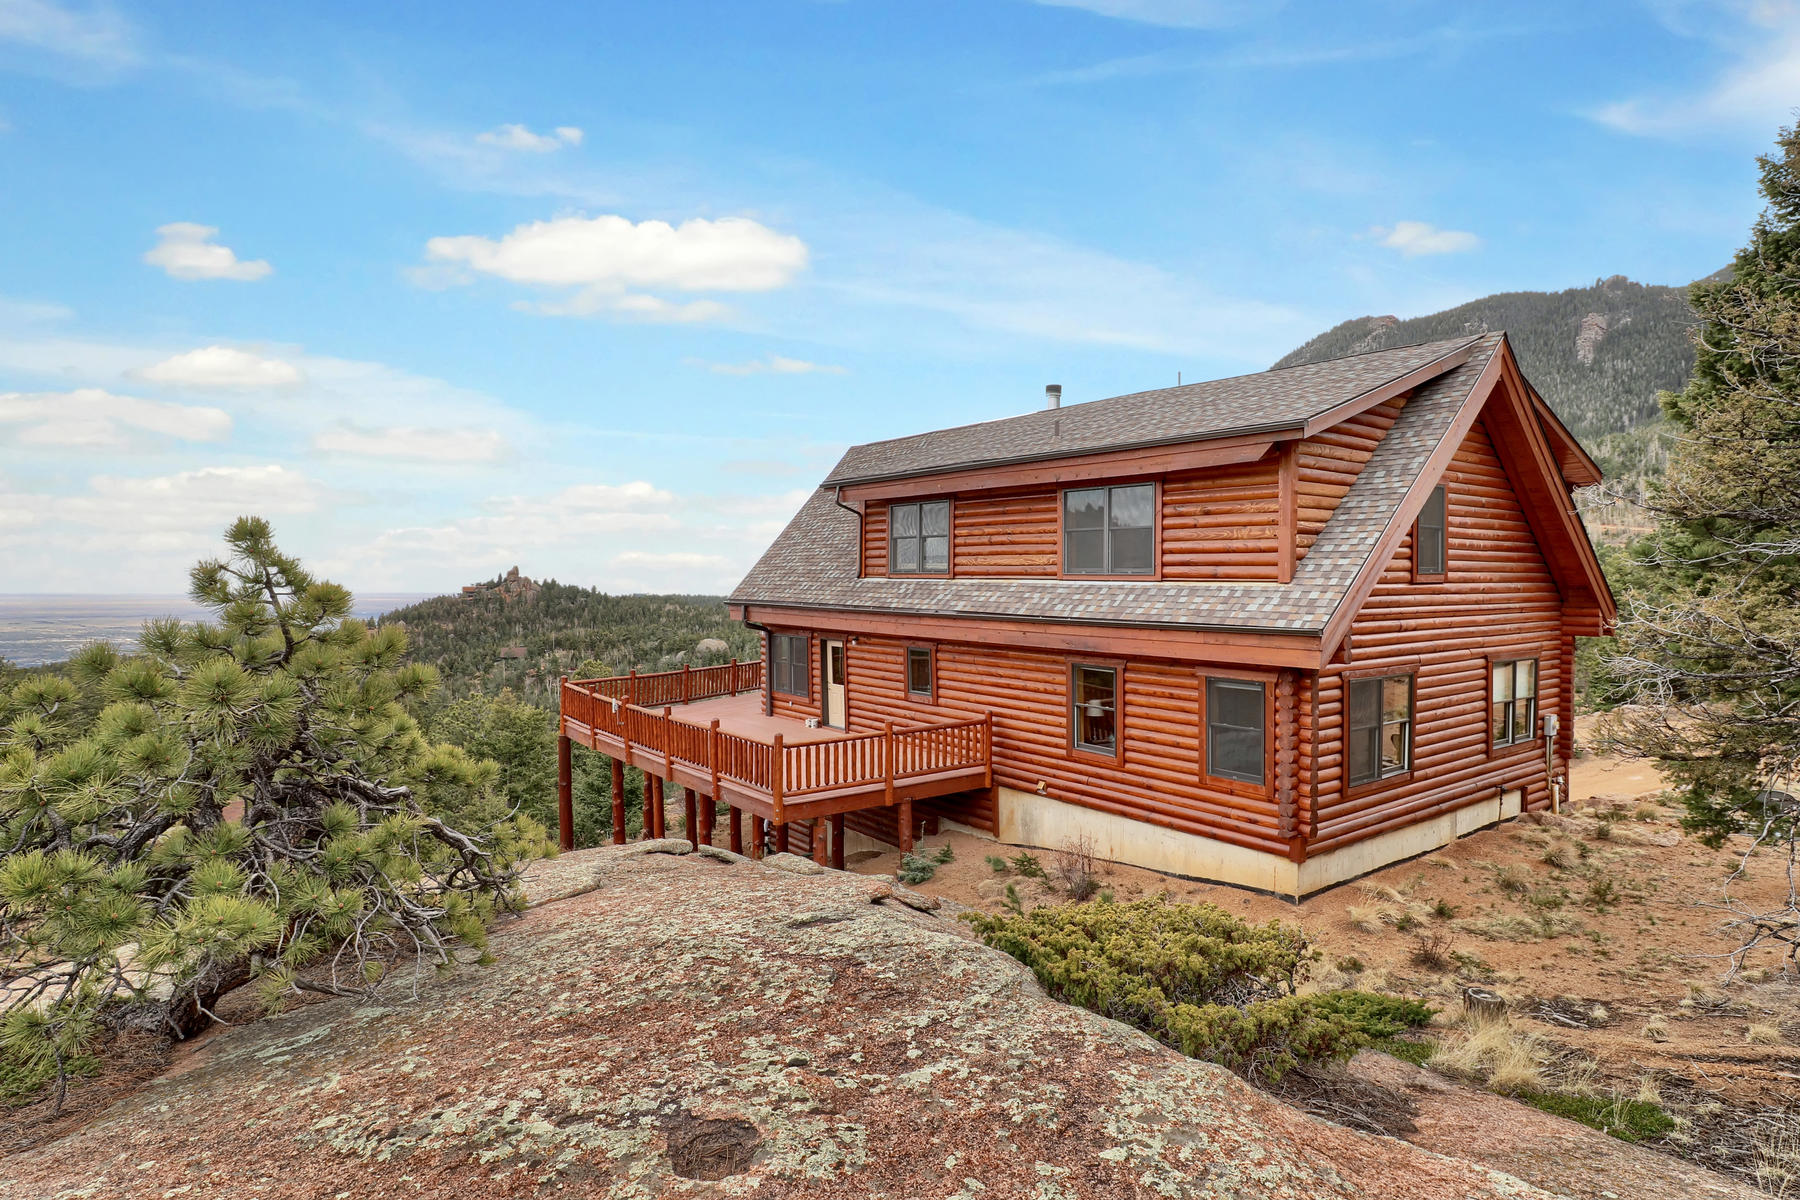 Single Family Home for Active at Breathtaking Panoramic Views...Unlike Anything You Have Ever Seen! 6125 Waterfall Loop Manitou Springs, Colorado 80829 United States